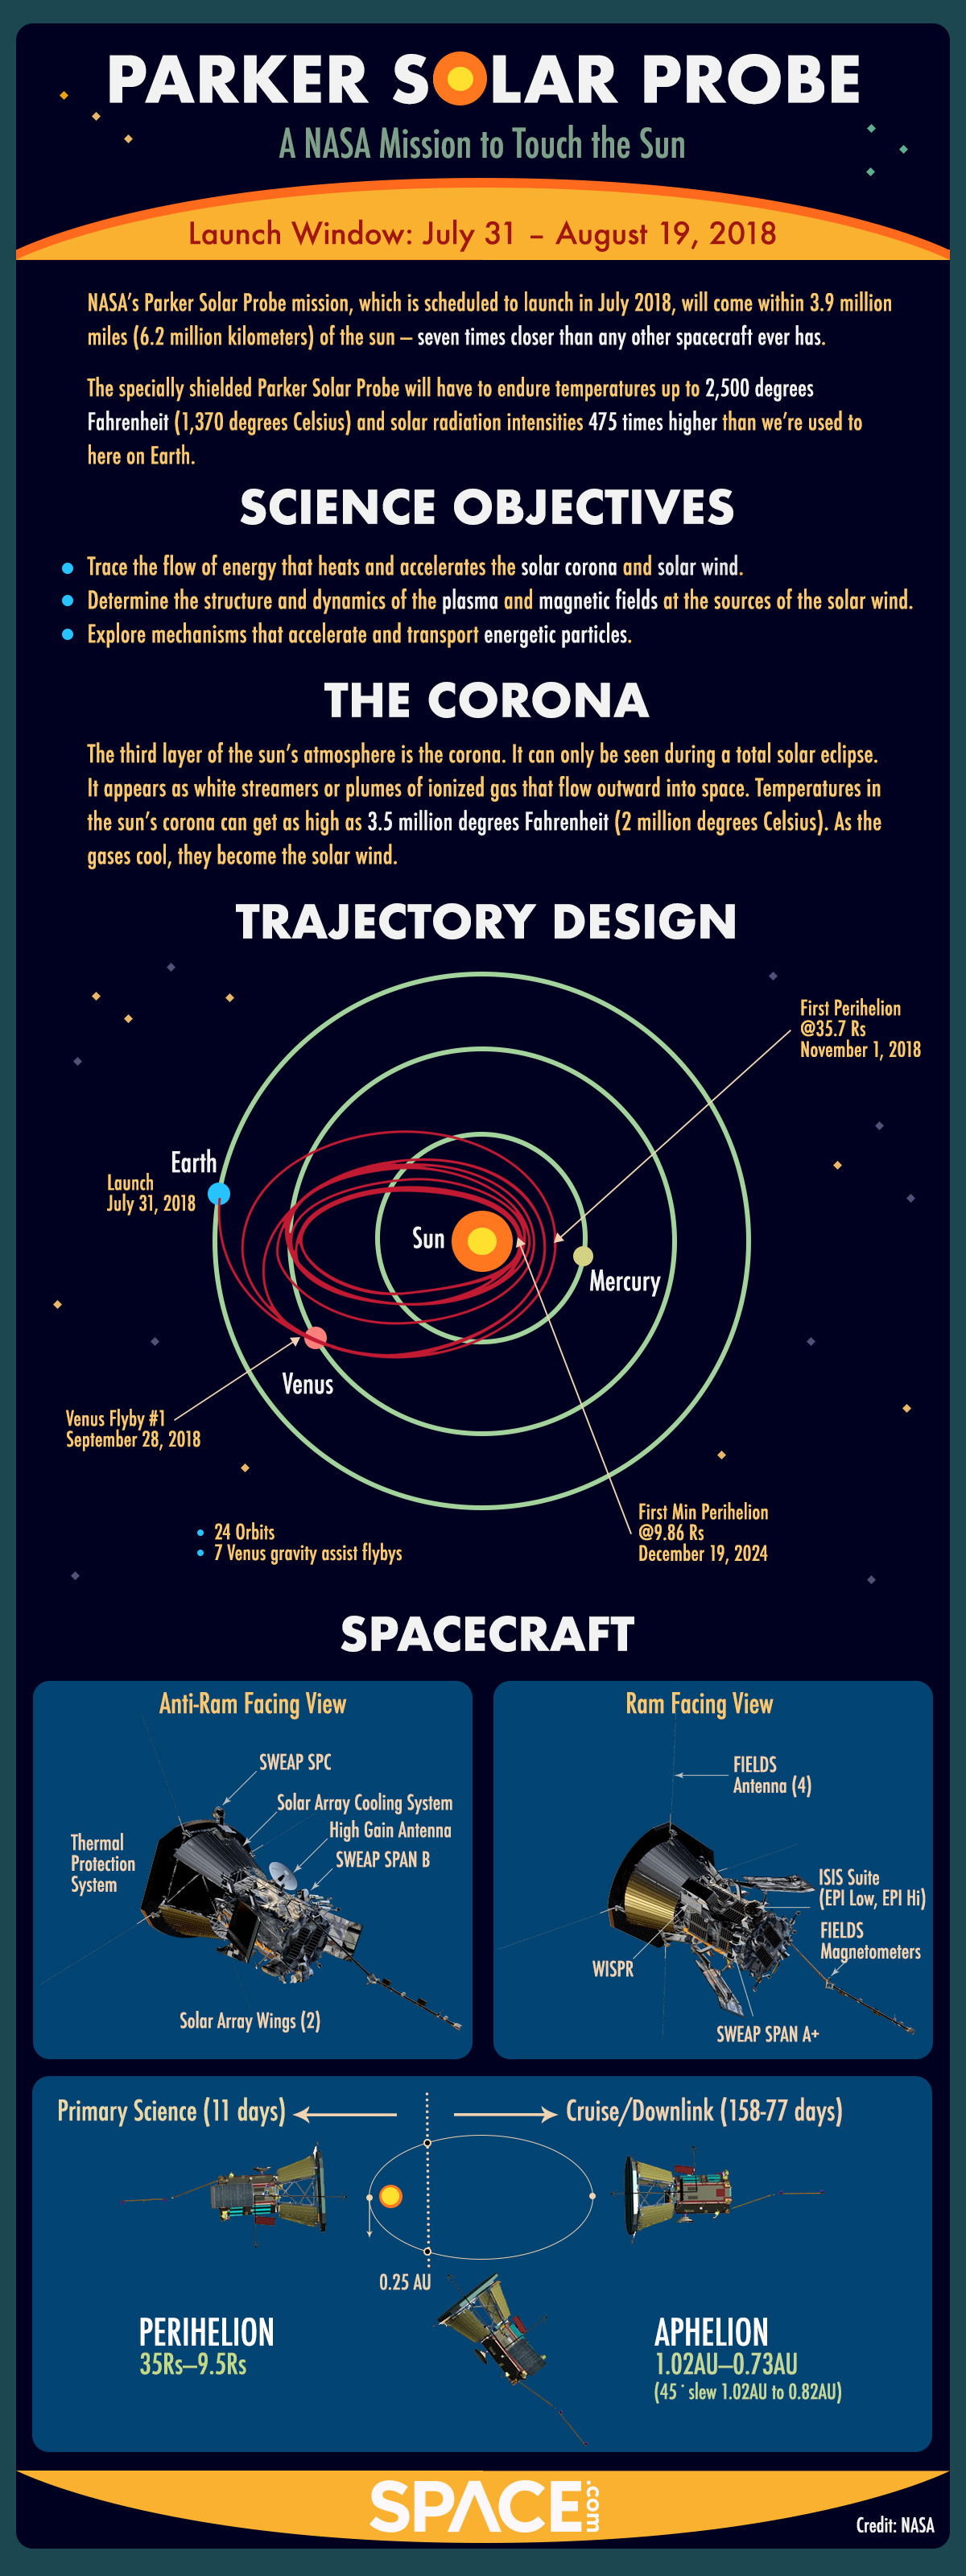 http://www.space.com/images/i/000/066/462/original/Solar-Probe-Plus-Infographic-Final.jpg